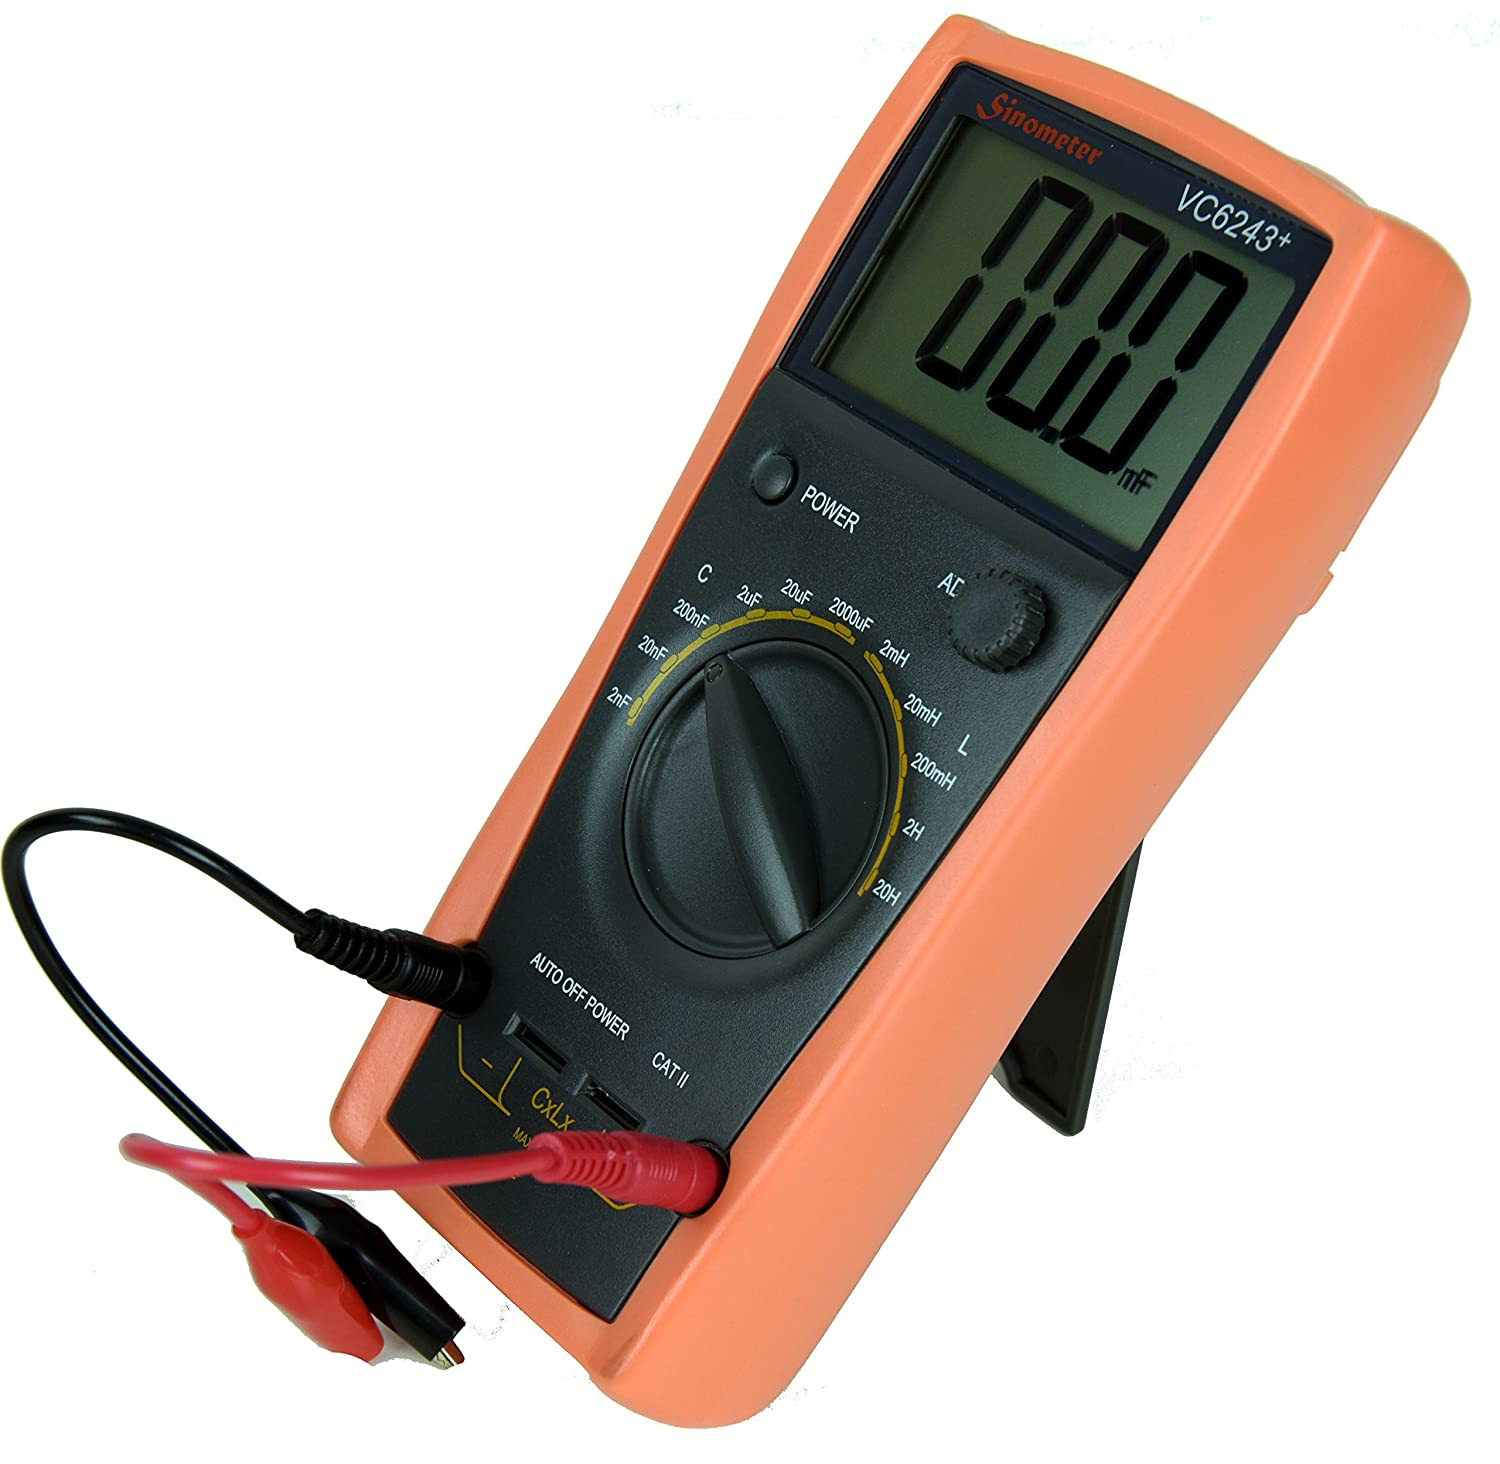 Sinometer Vc6243 An L C Meter Dedicated To Measure Inductance And Home Images Lc Circuit Coil Capacitor Capacitance